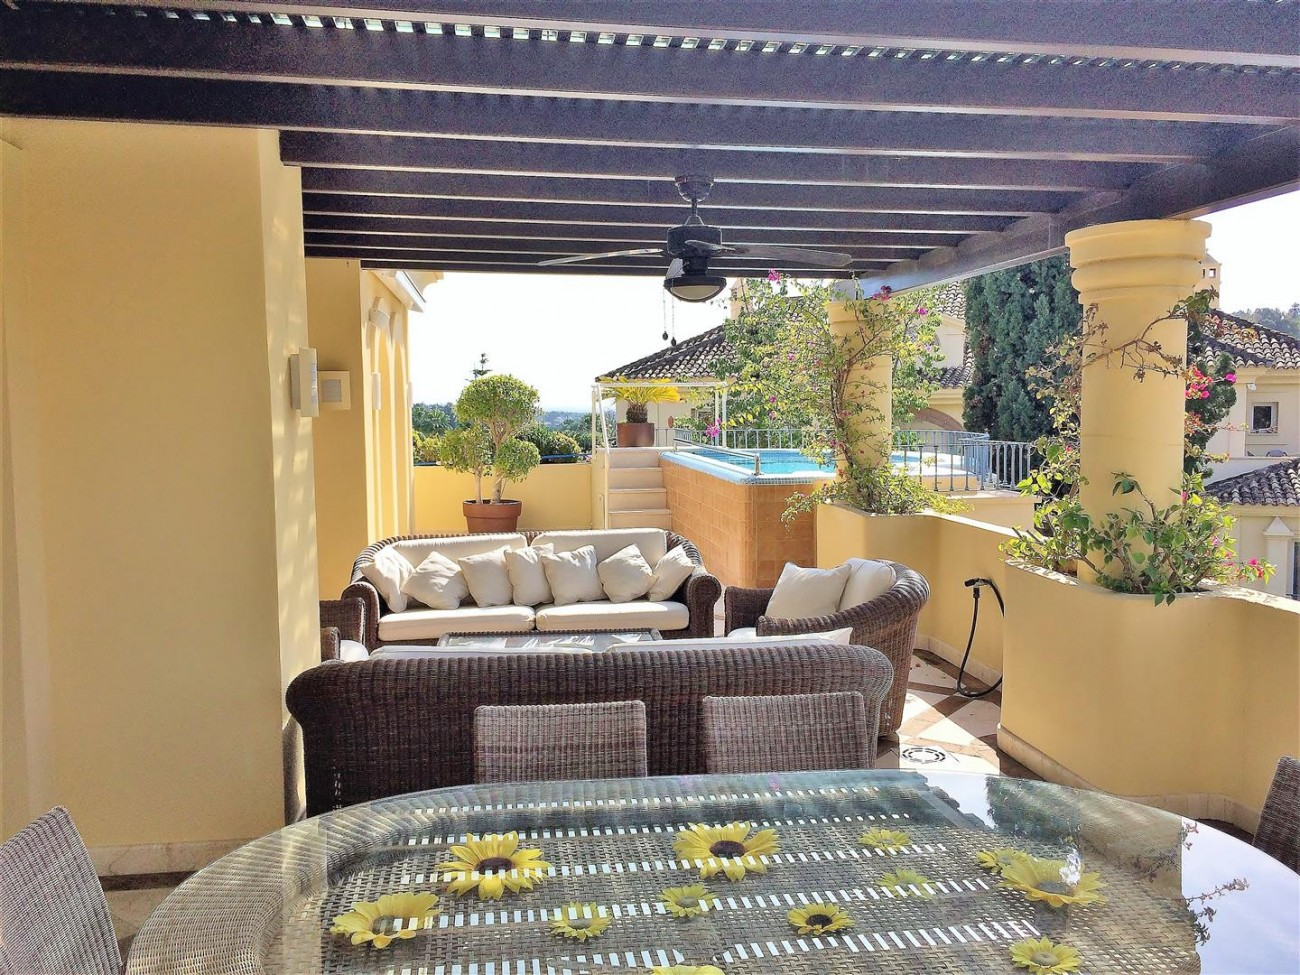 Penthouse for sale Las Alamandas Nueva Andalucia Marbella Spain (25) (Large)